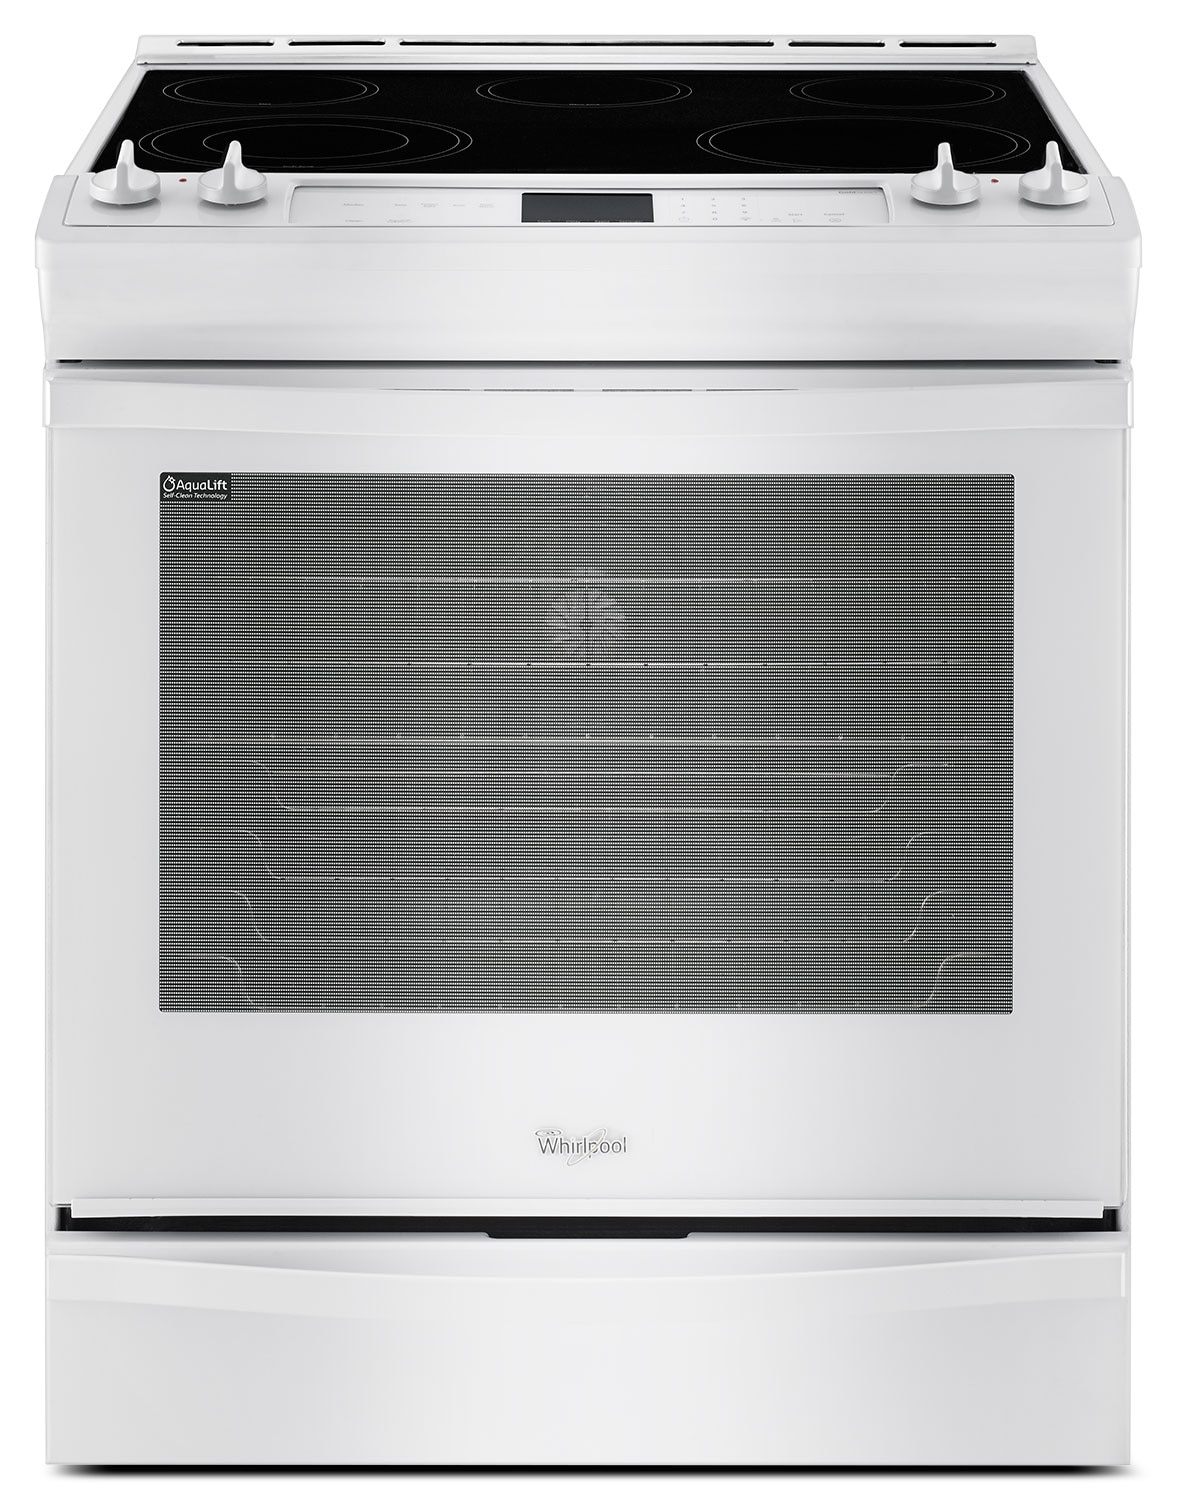 Whirlpool White Freestanding Electric Convection Range (6.2 Cu. Ft.) - YWEE730H0DW